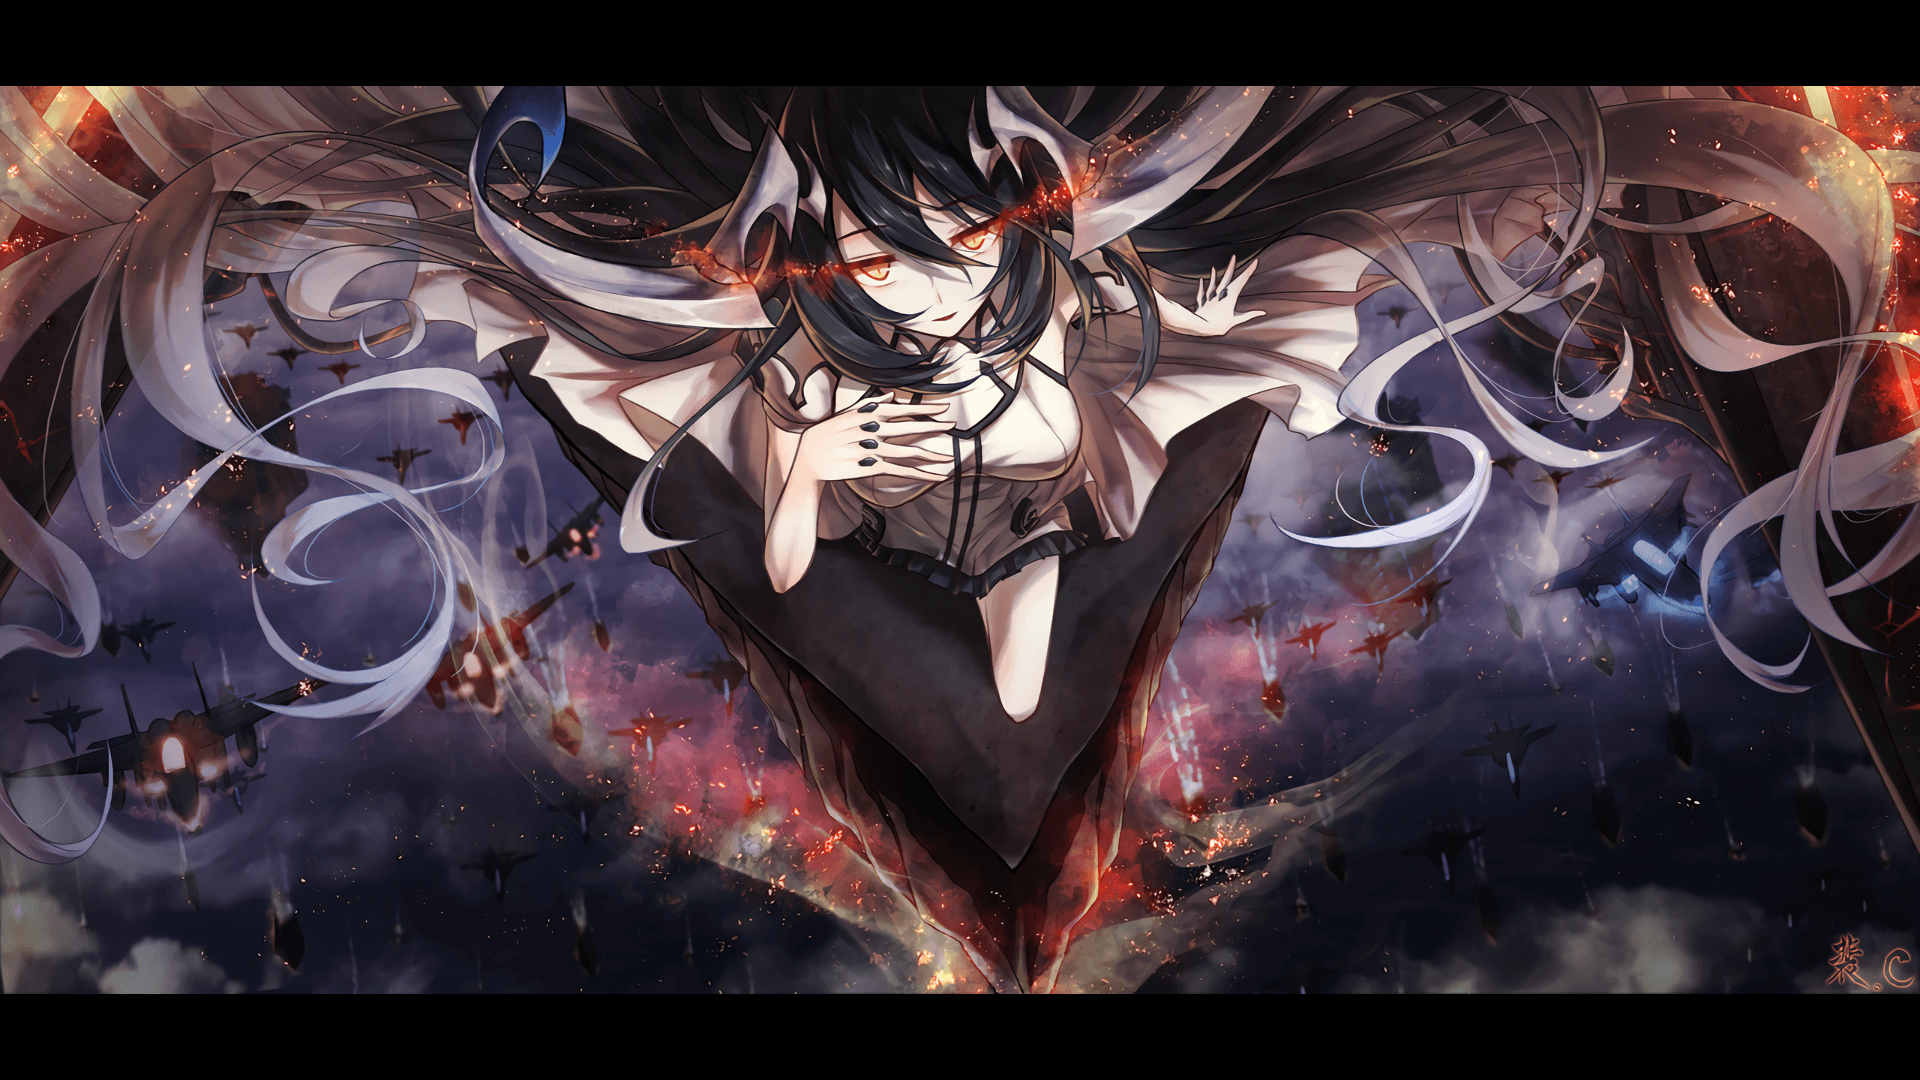 Anime Demon Wallpapers Top Free Anime Demon Backgrounds Wallpaperaccess